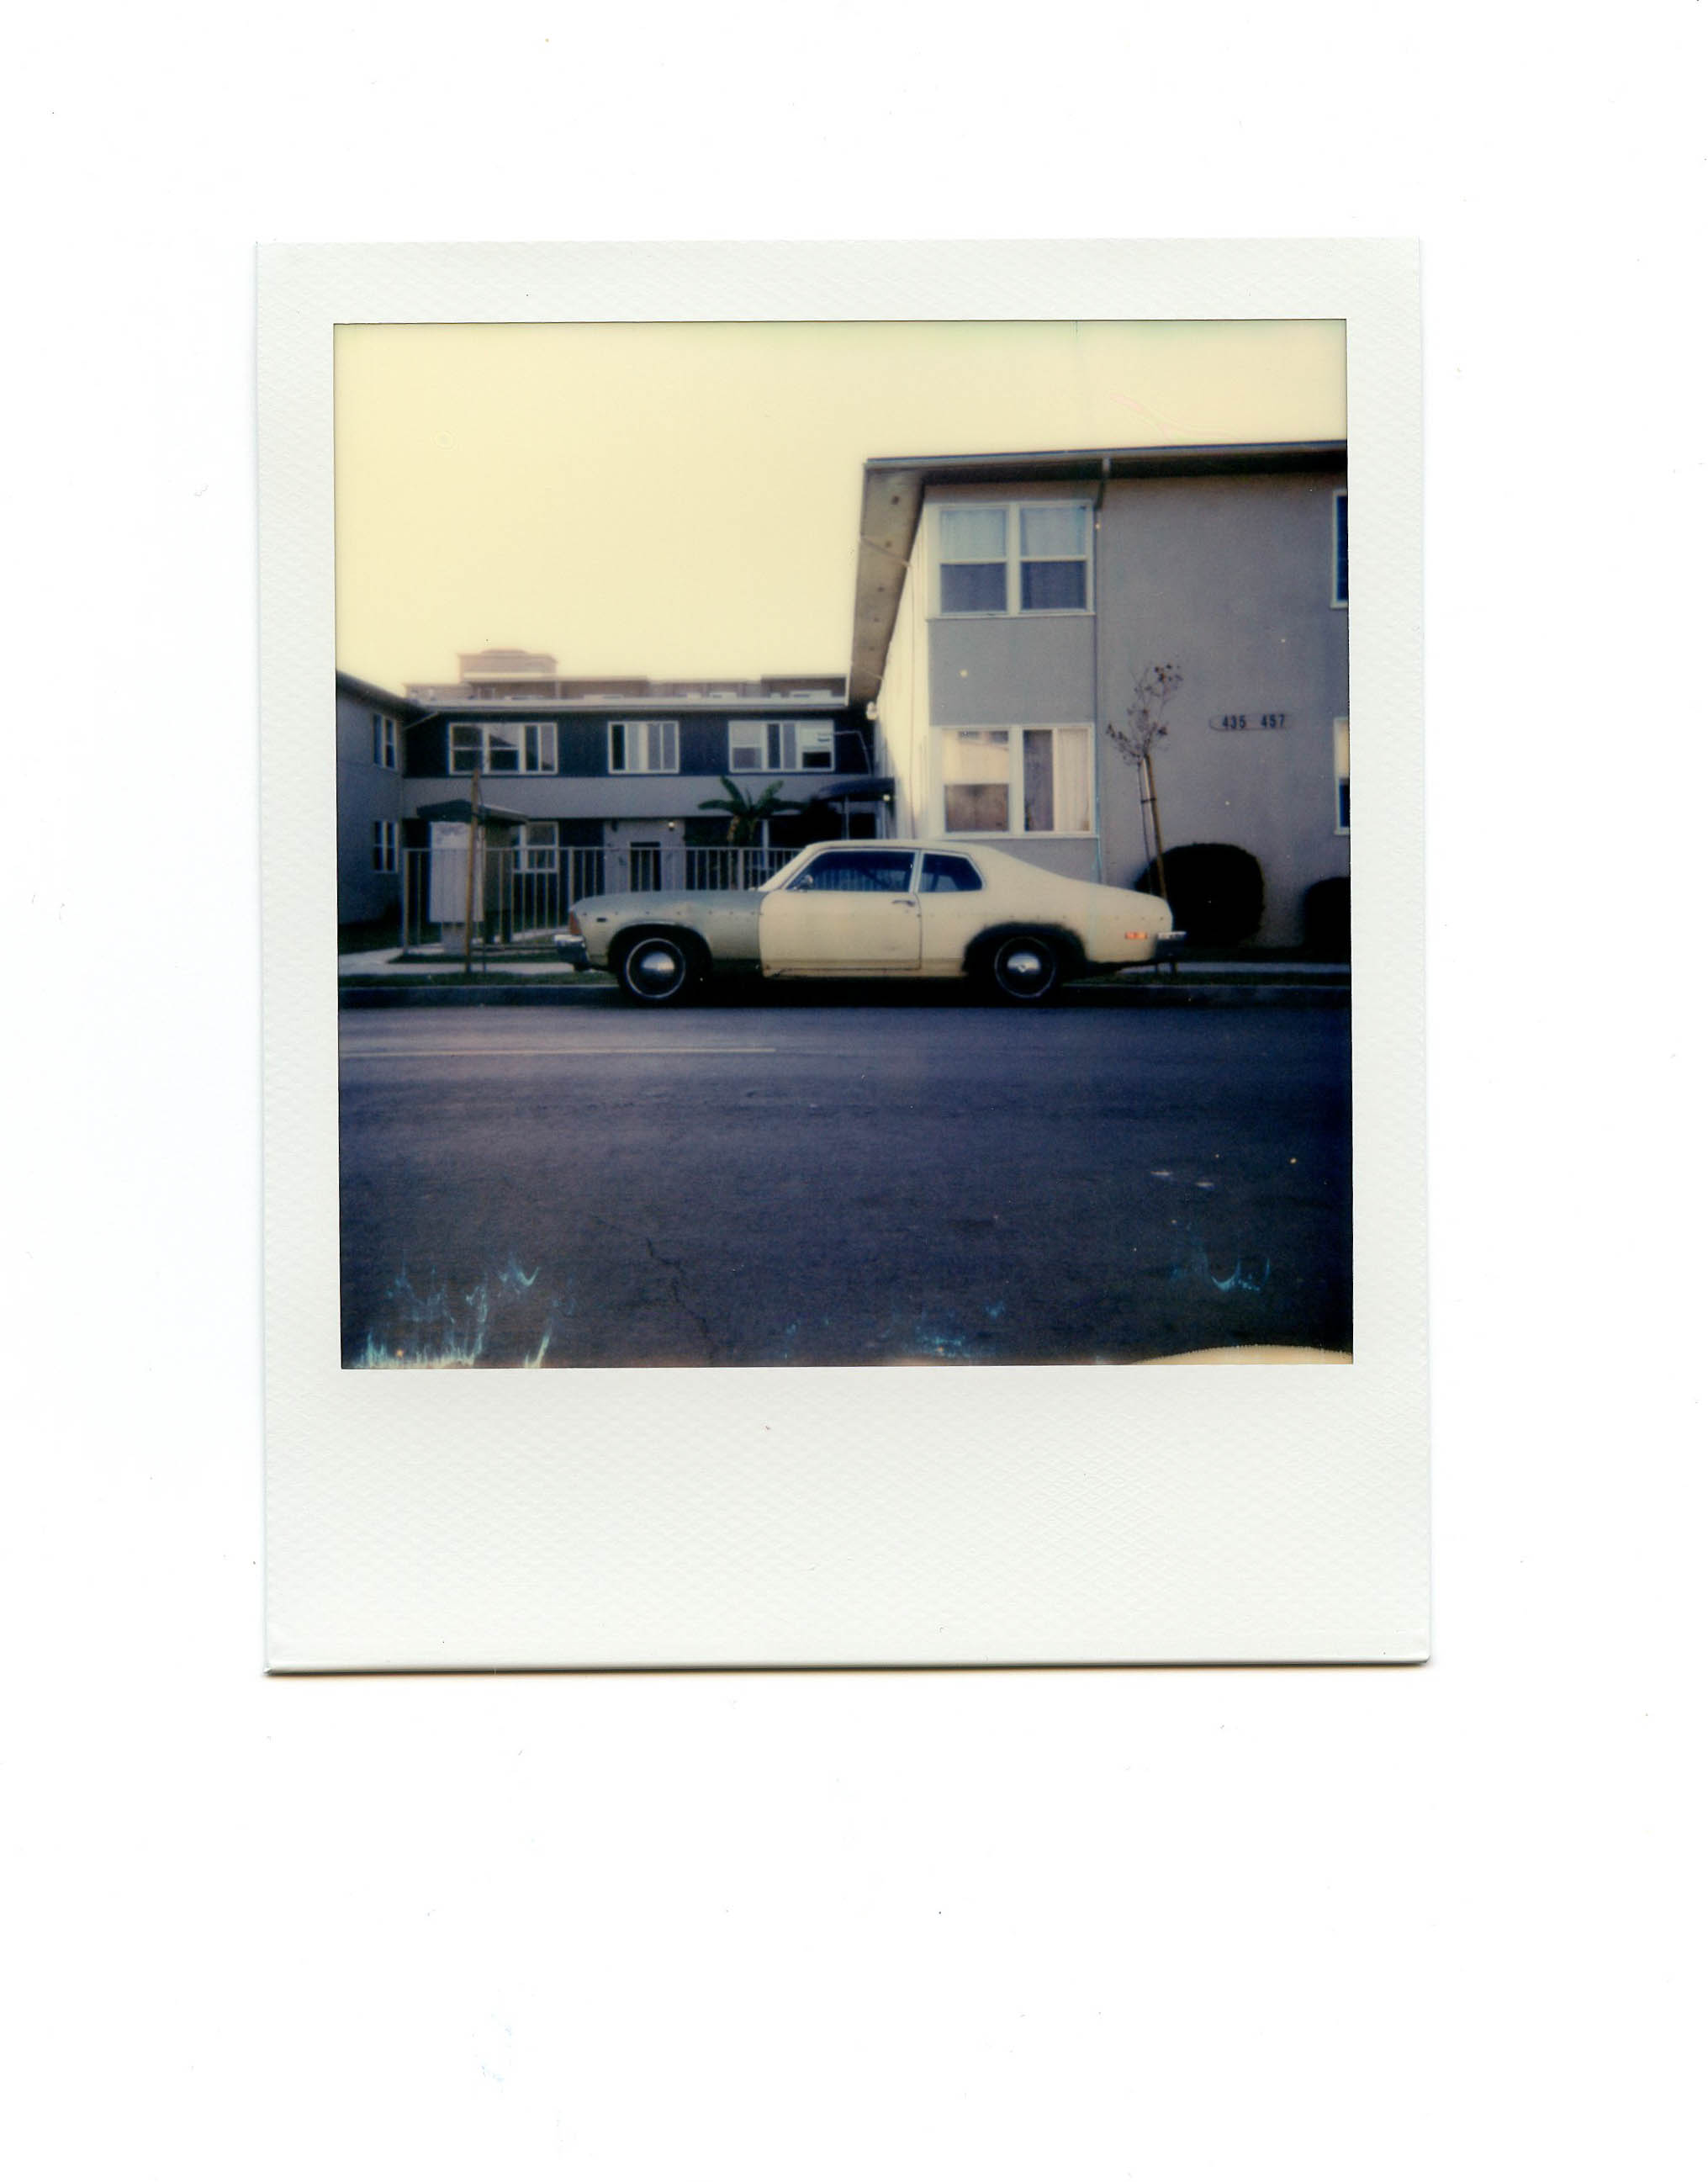 1 Polaroid Sun 600 Instant Film Camera Review - FilterGrade